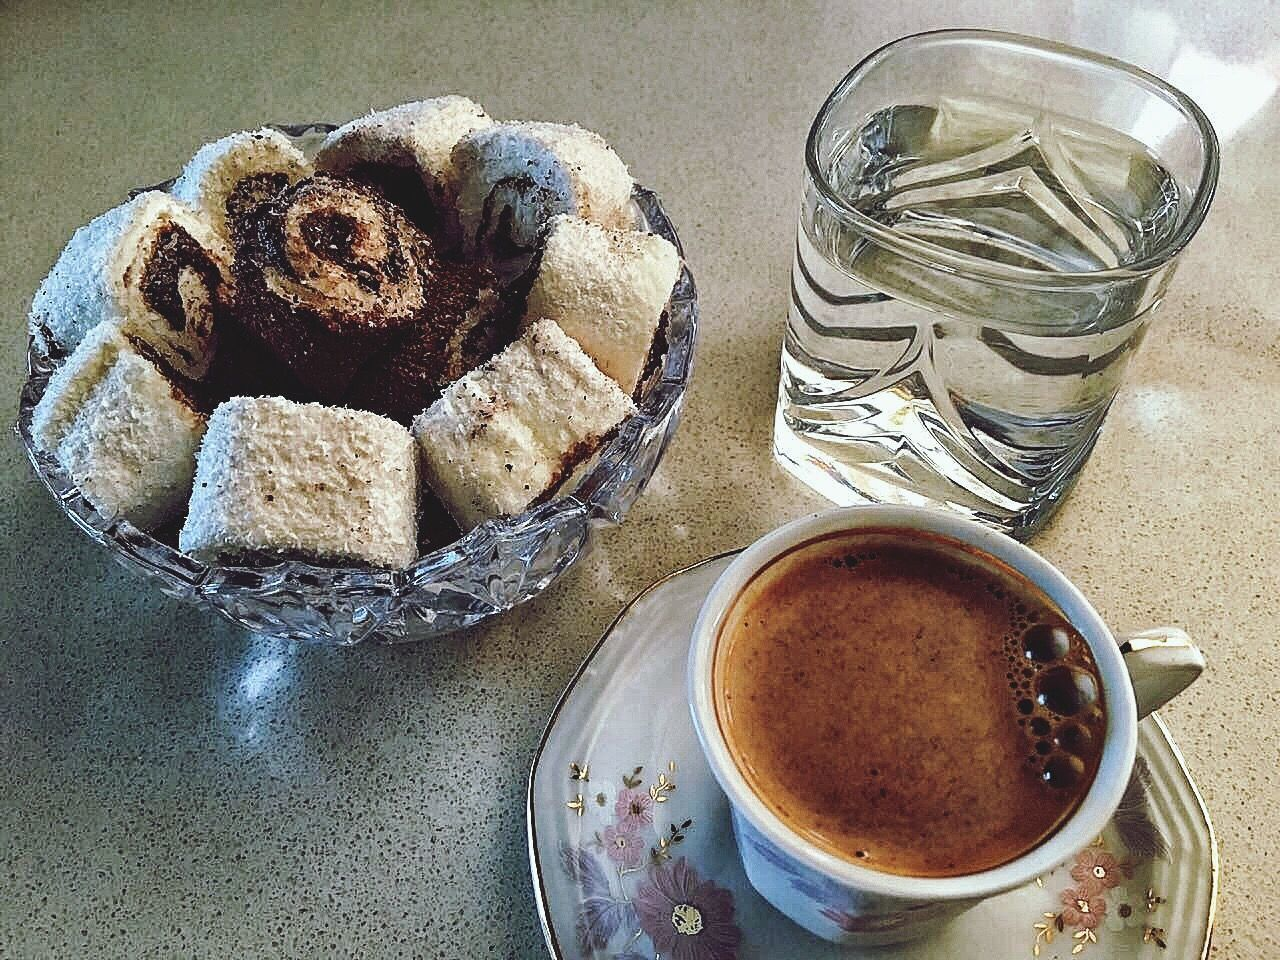 Turkish Delight and Turkish Coffee Turkishcoffee Turkish Delight Coffee Coffee Time Food Food And Drink Drink No People First Eyeem Photo Lieblingsteil EyeEmNewHere Uniqueness Miles Away Close-up Ready-to-eat Indoors  Turkey EyeEm EyeEm Best Shots EyeEm Gallery Day EyeEmBestPics EyeEm Best Edits Healthy Eating Cultures